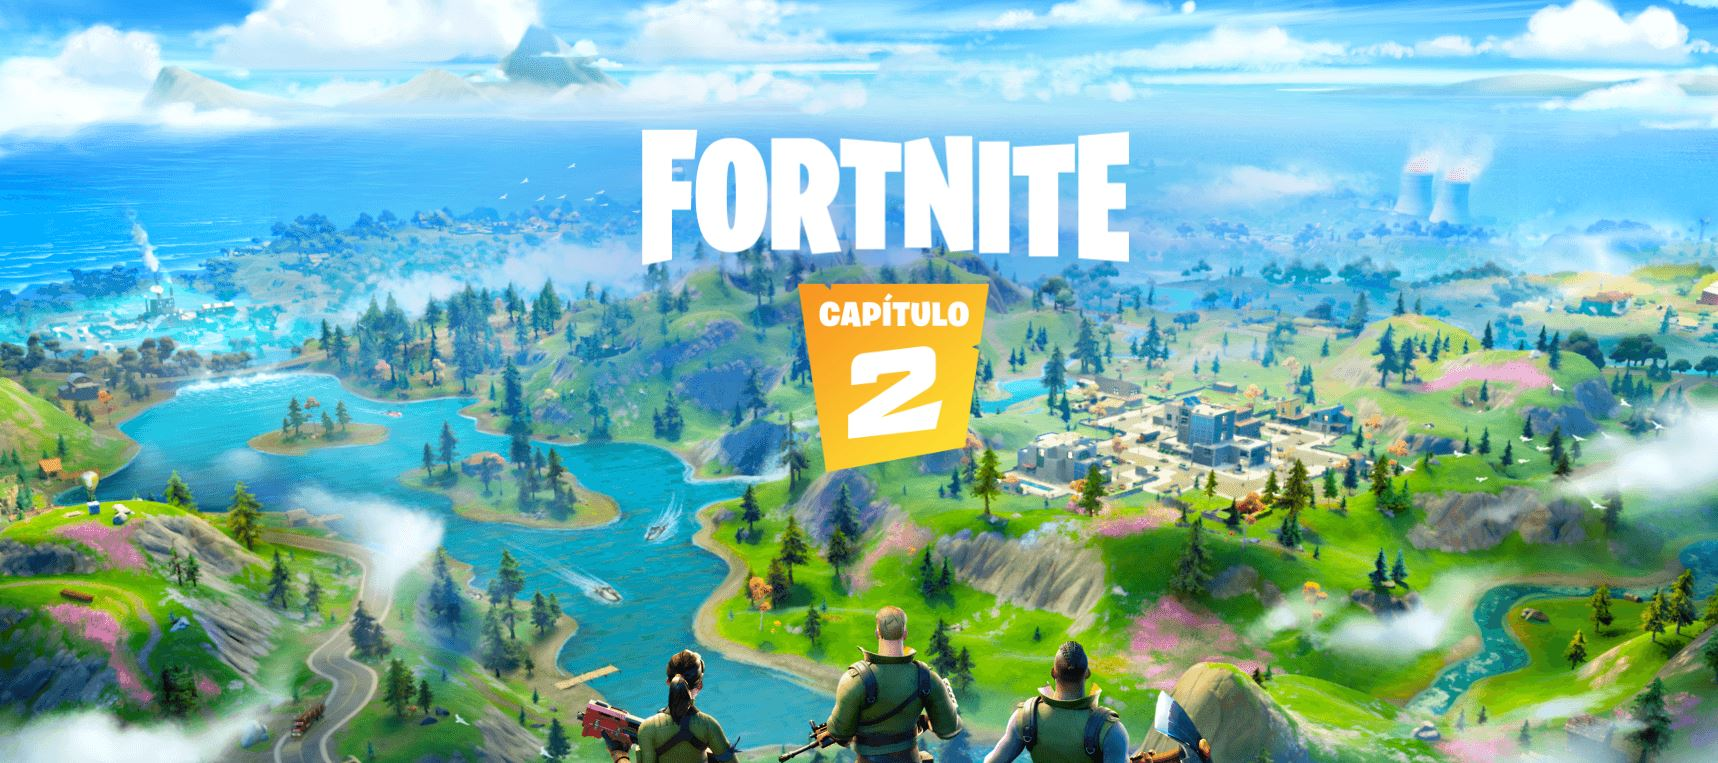 Epic Games | Fortnite Capítulo 2 CHEGOU!